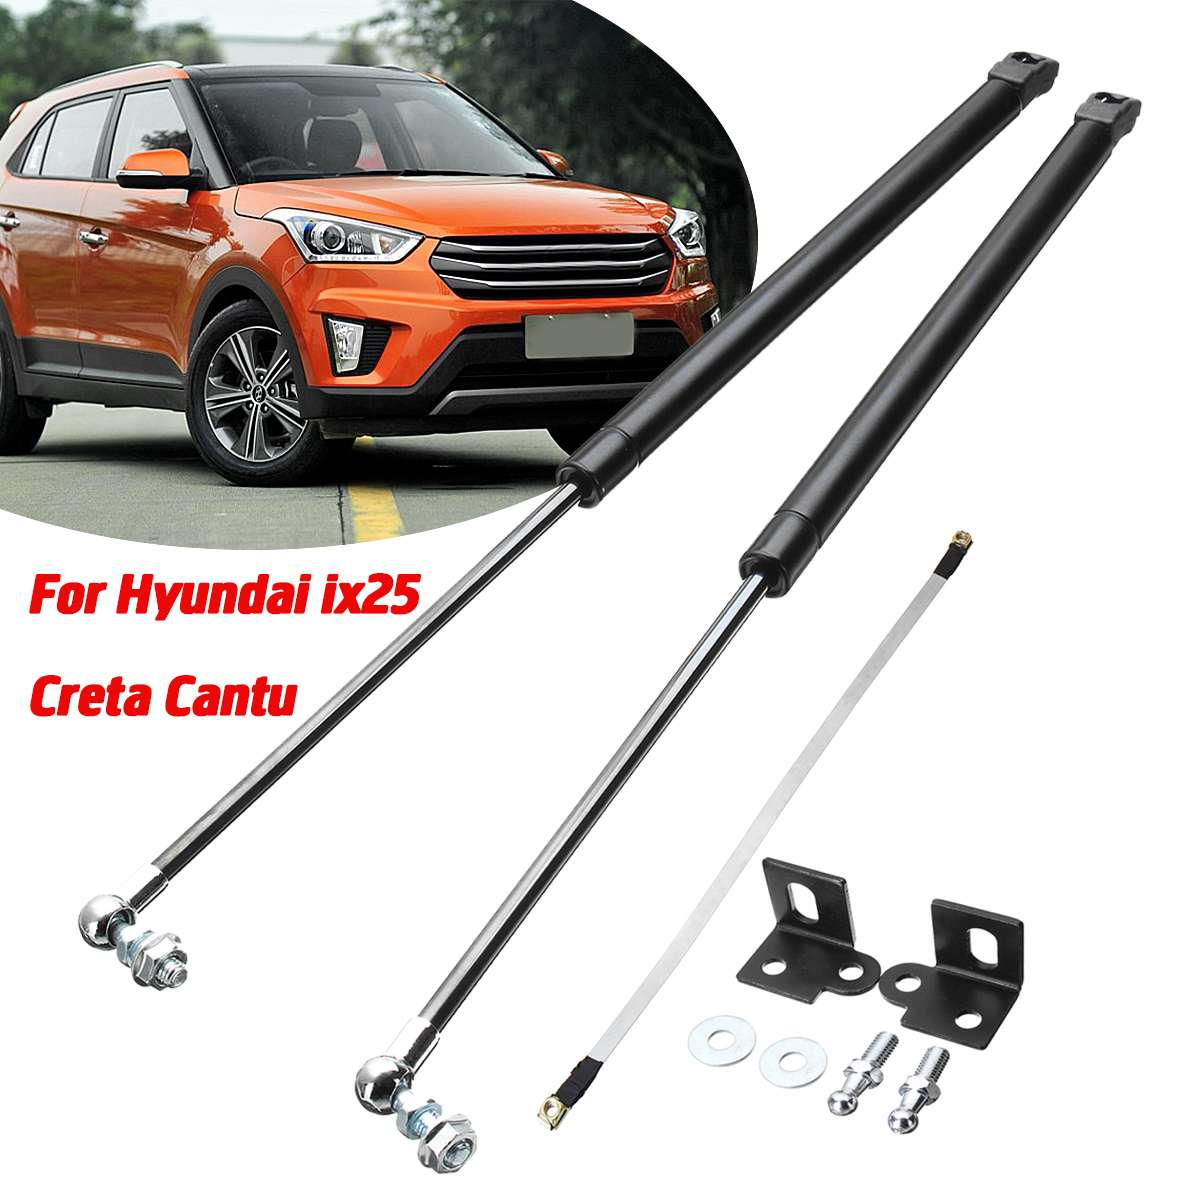 Car Front Bonnet Hood Modify Gas Struts Lift Support Shock Damper Bars For Hyundai ix25 for Creta Cantu Absorber|Strut Bars| |  - title=